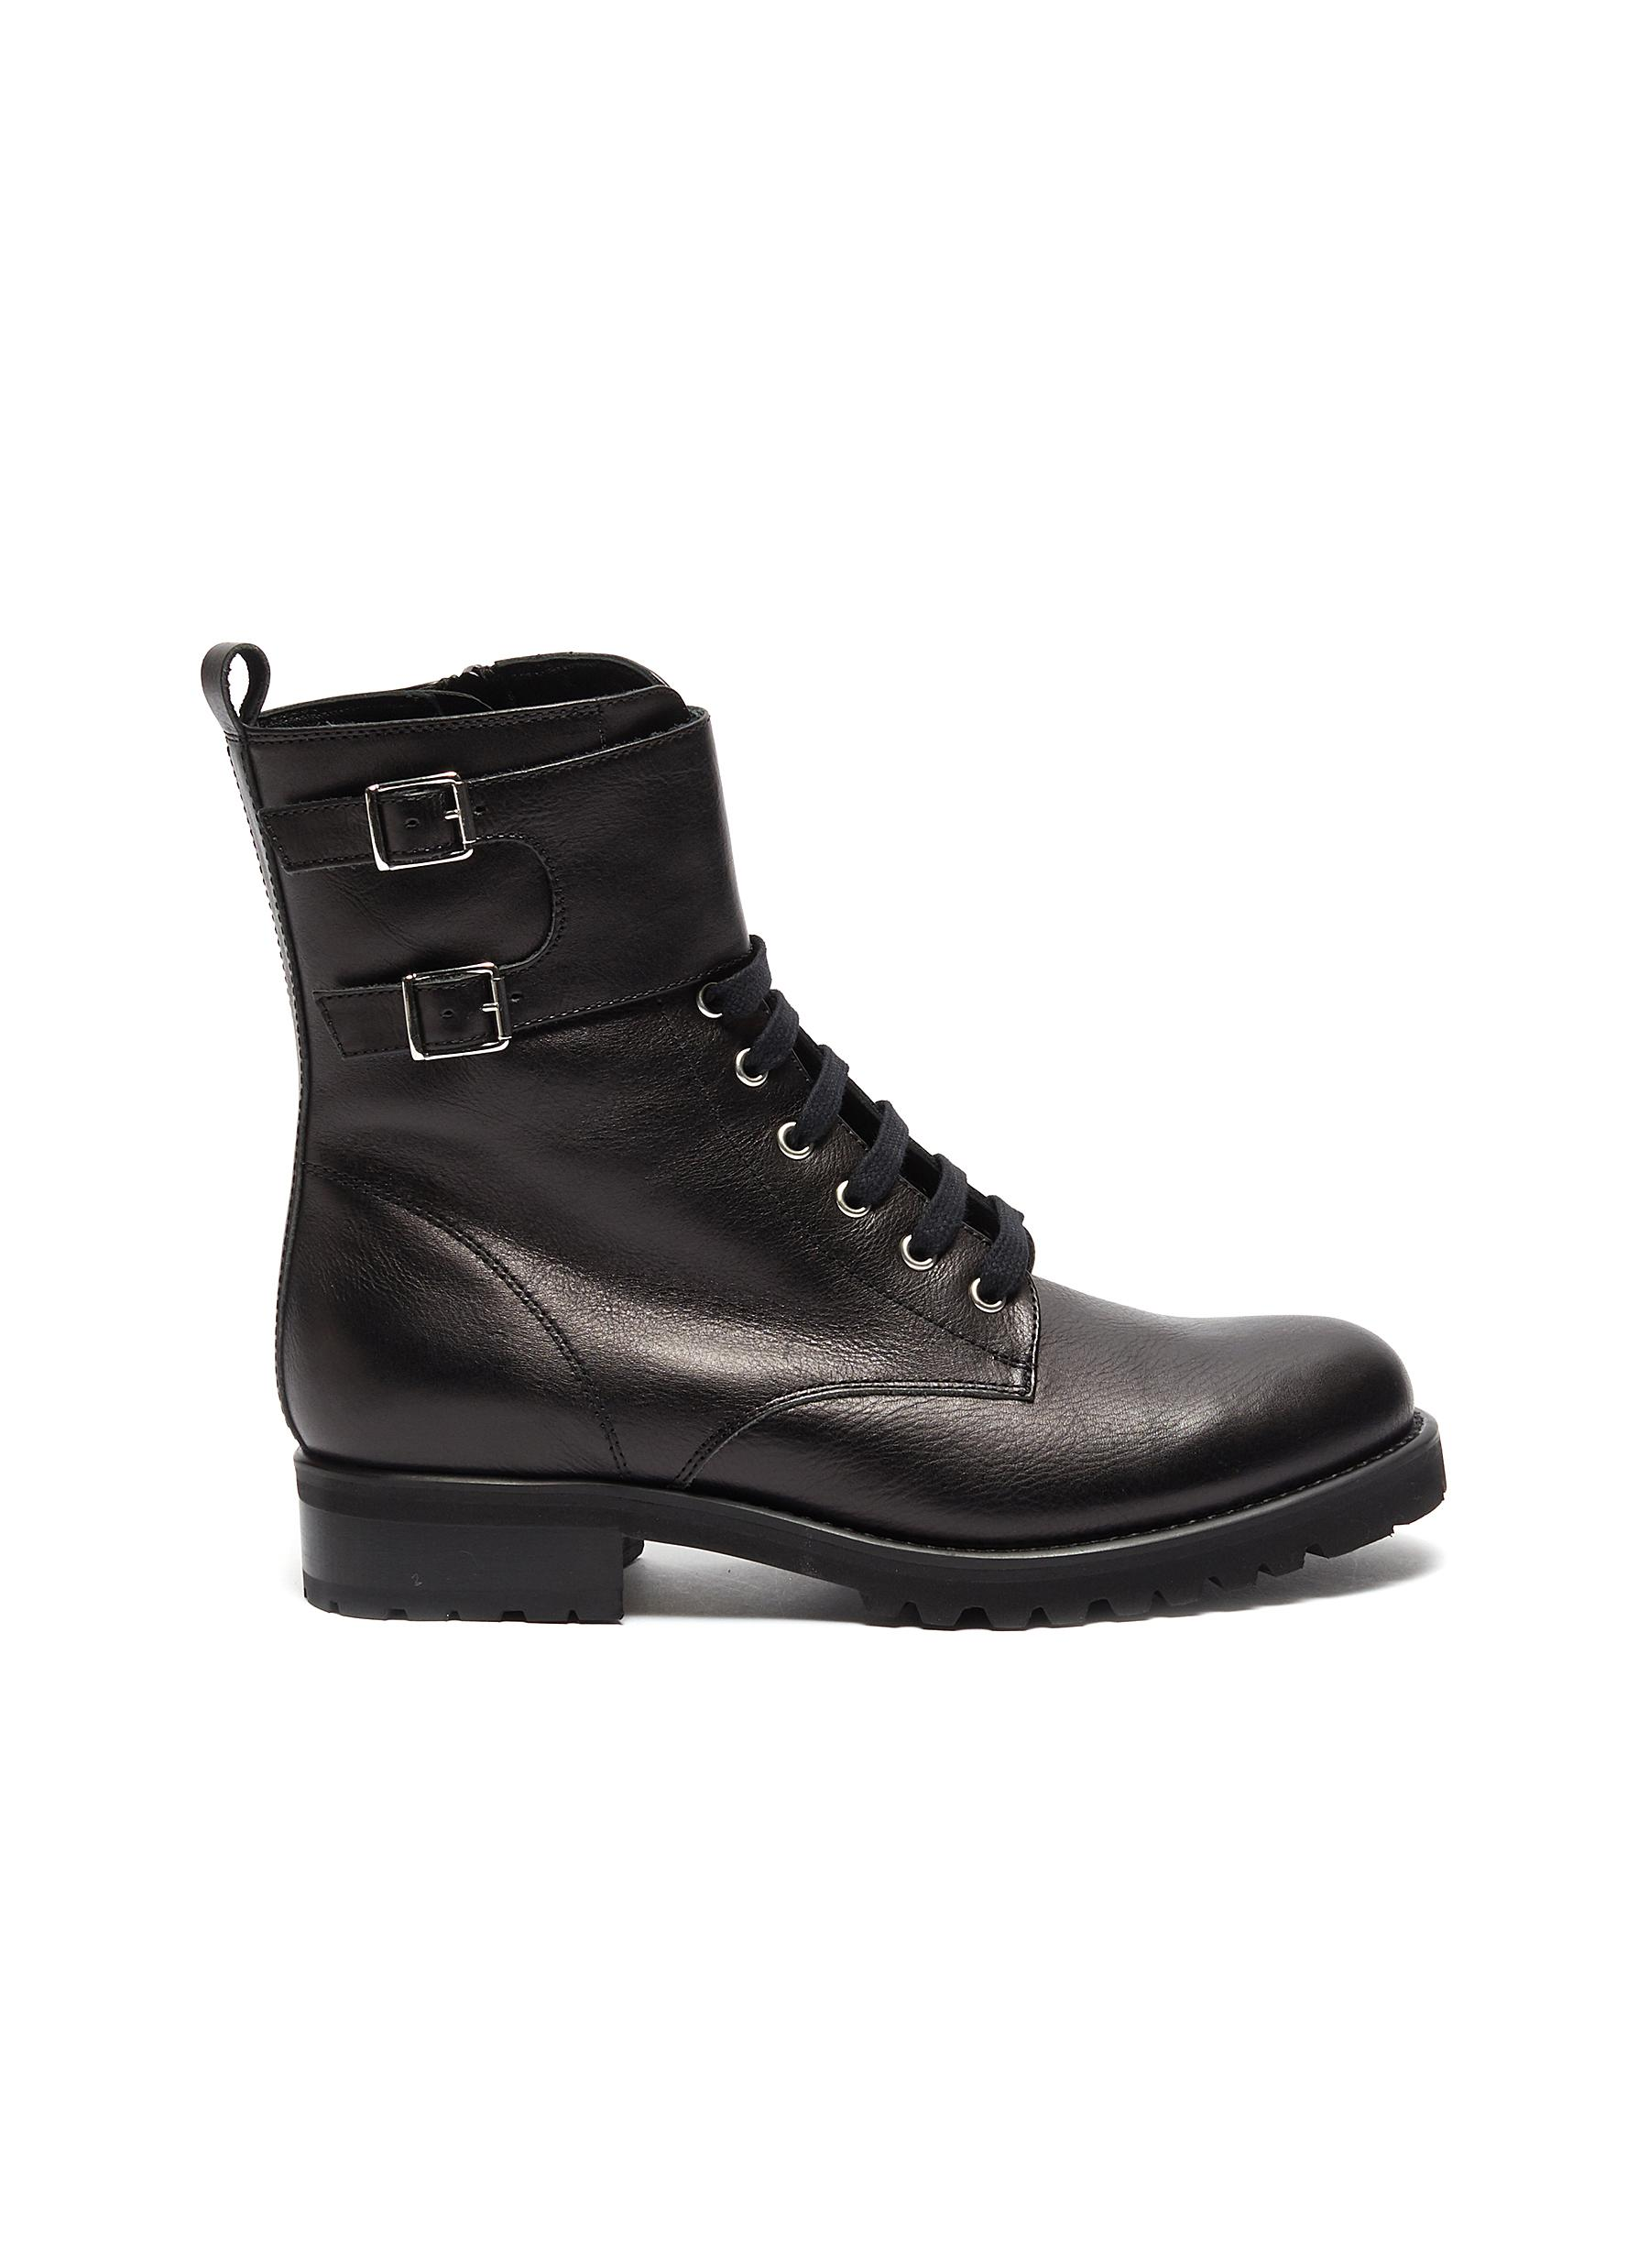 shop Fabio Rusconi 'Goldy' lace up leather biker boots online